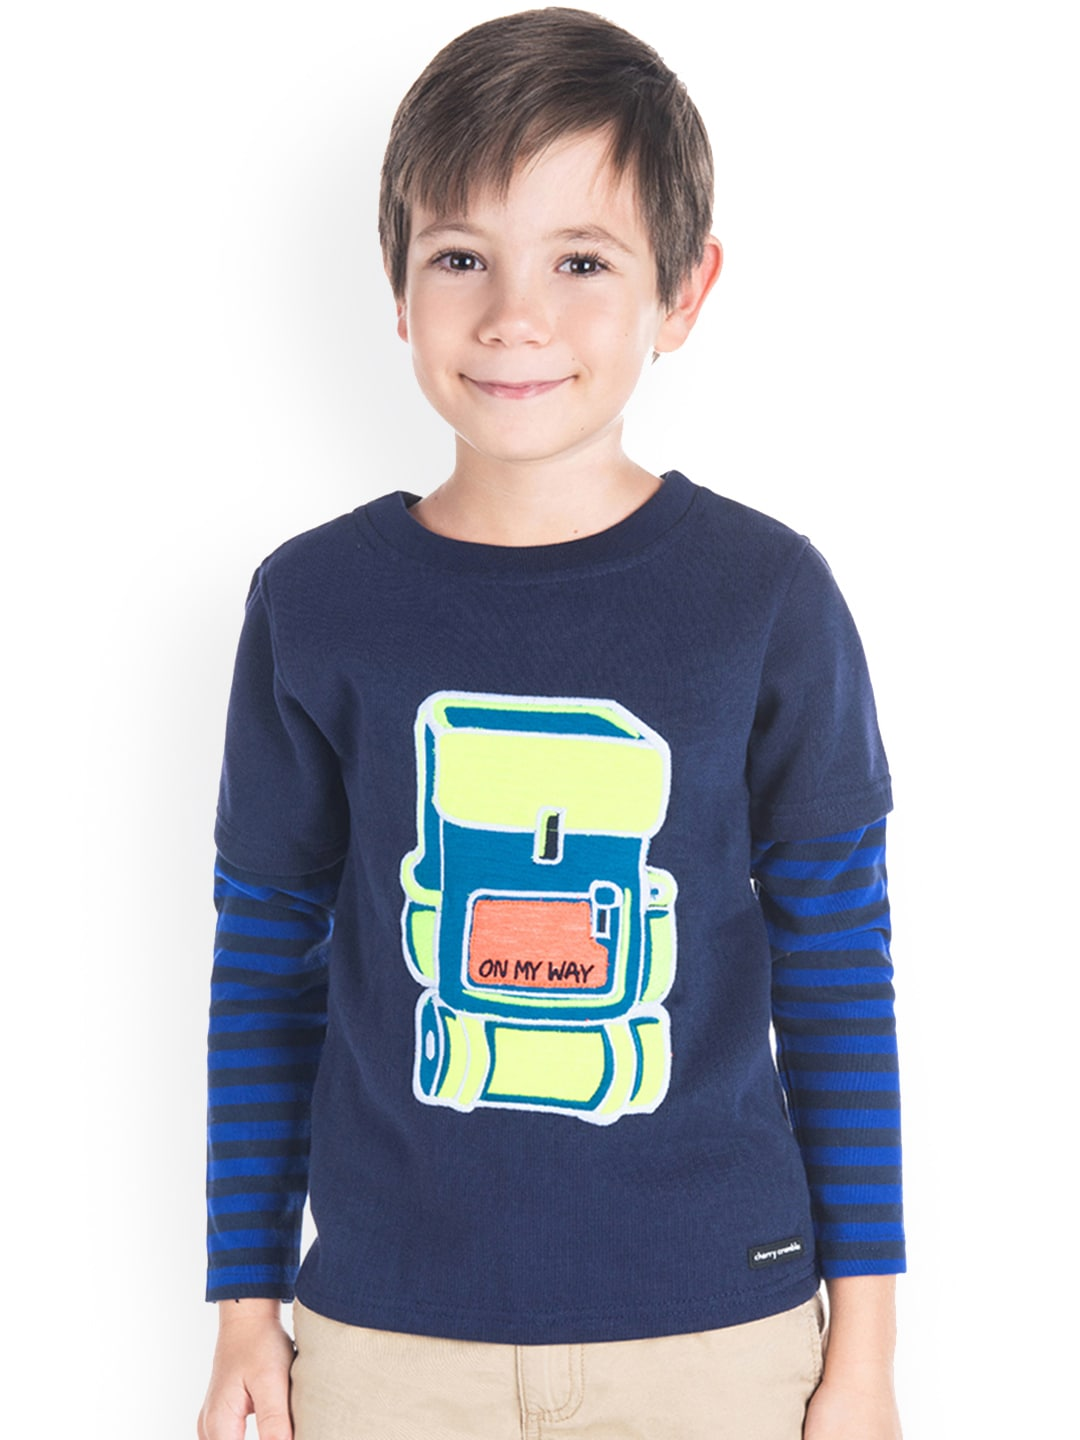 5c874cea1ef8 Boys Sweatshirts - Buy Sweatshirts for Boys Online